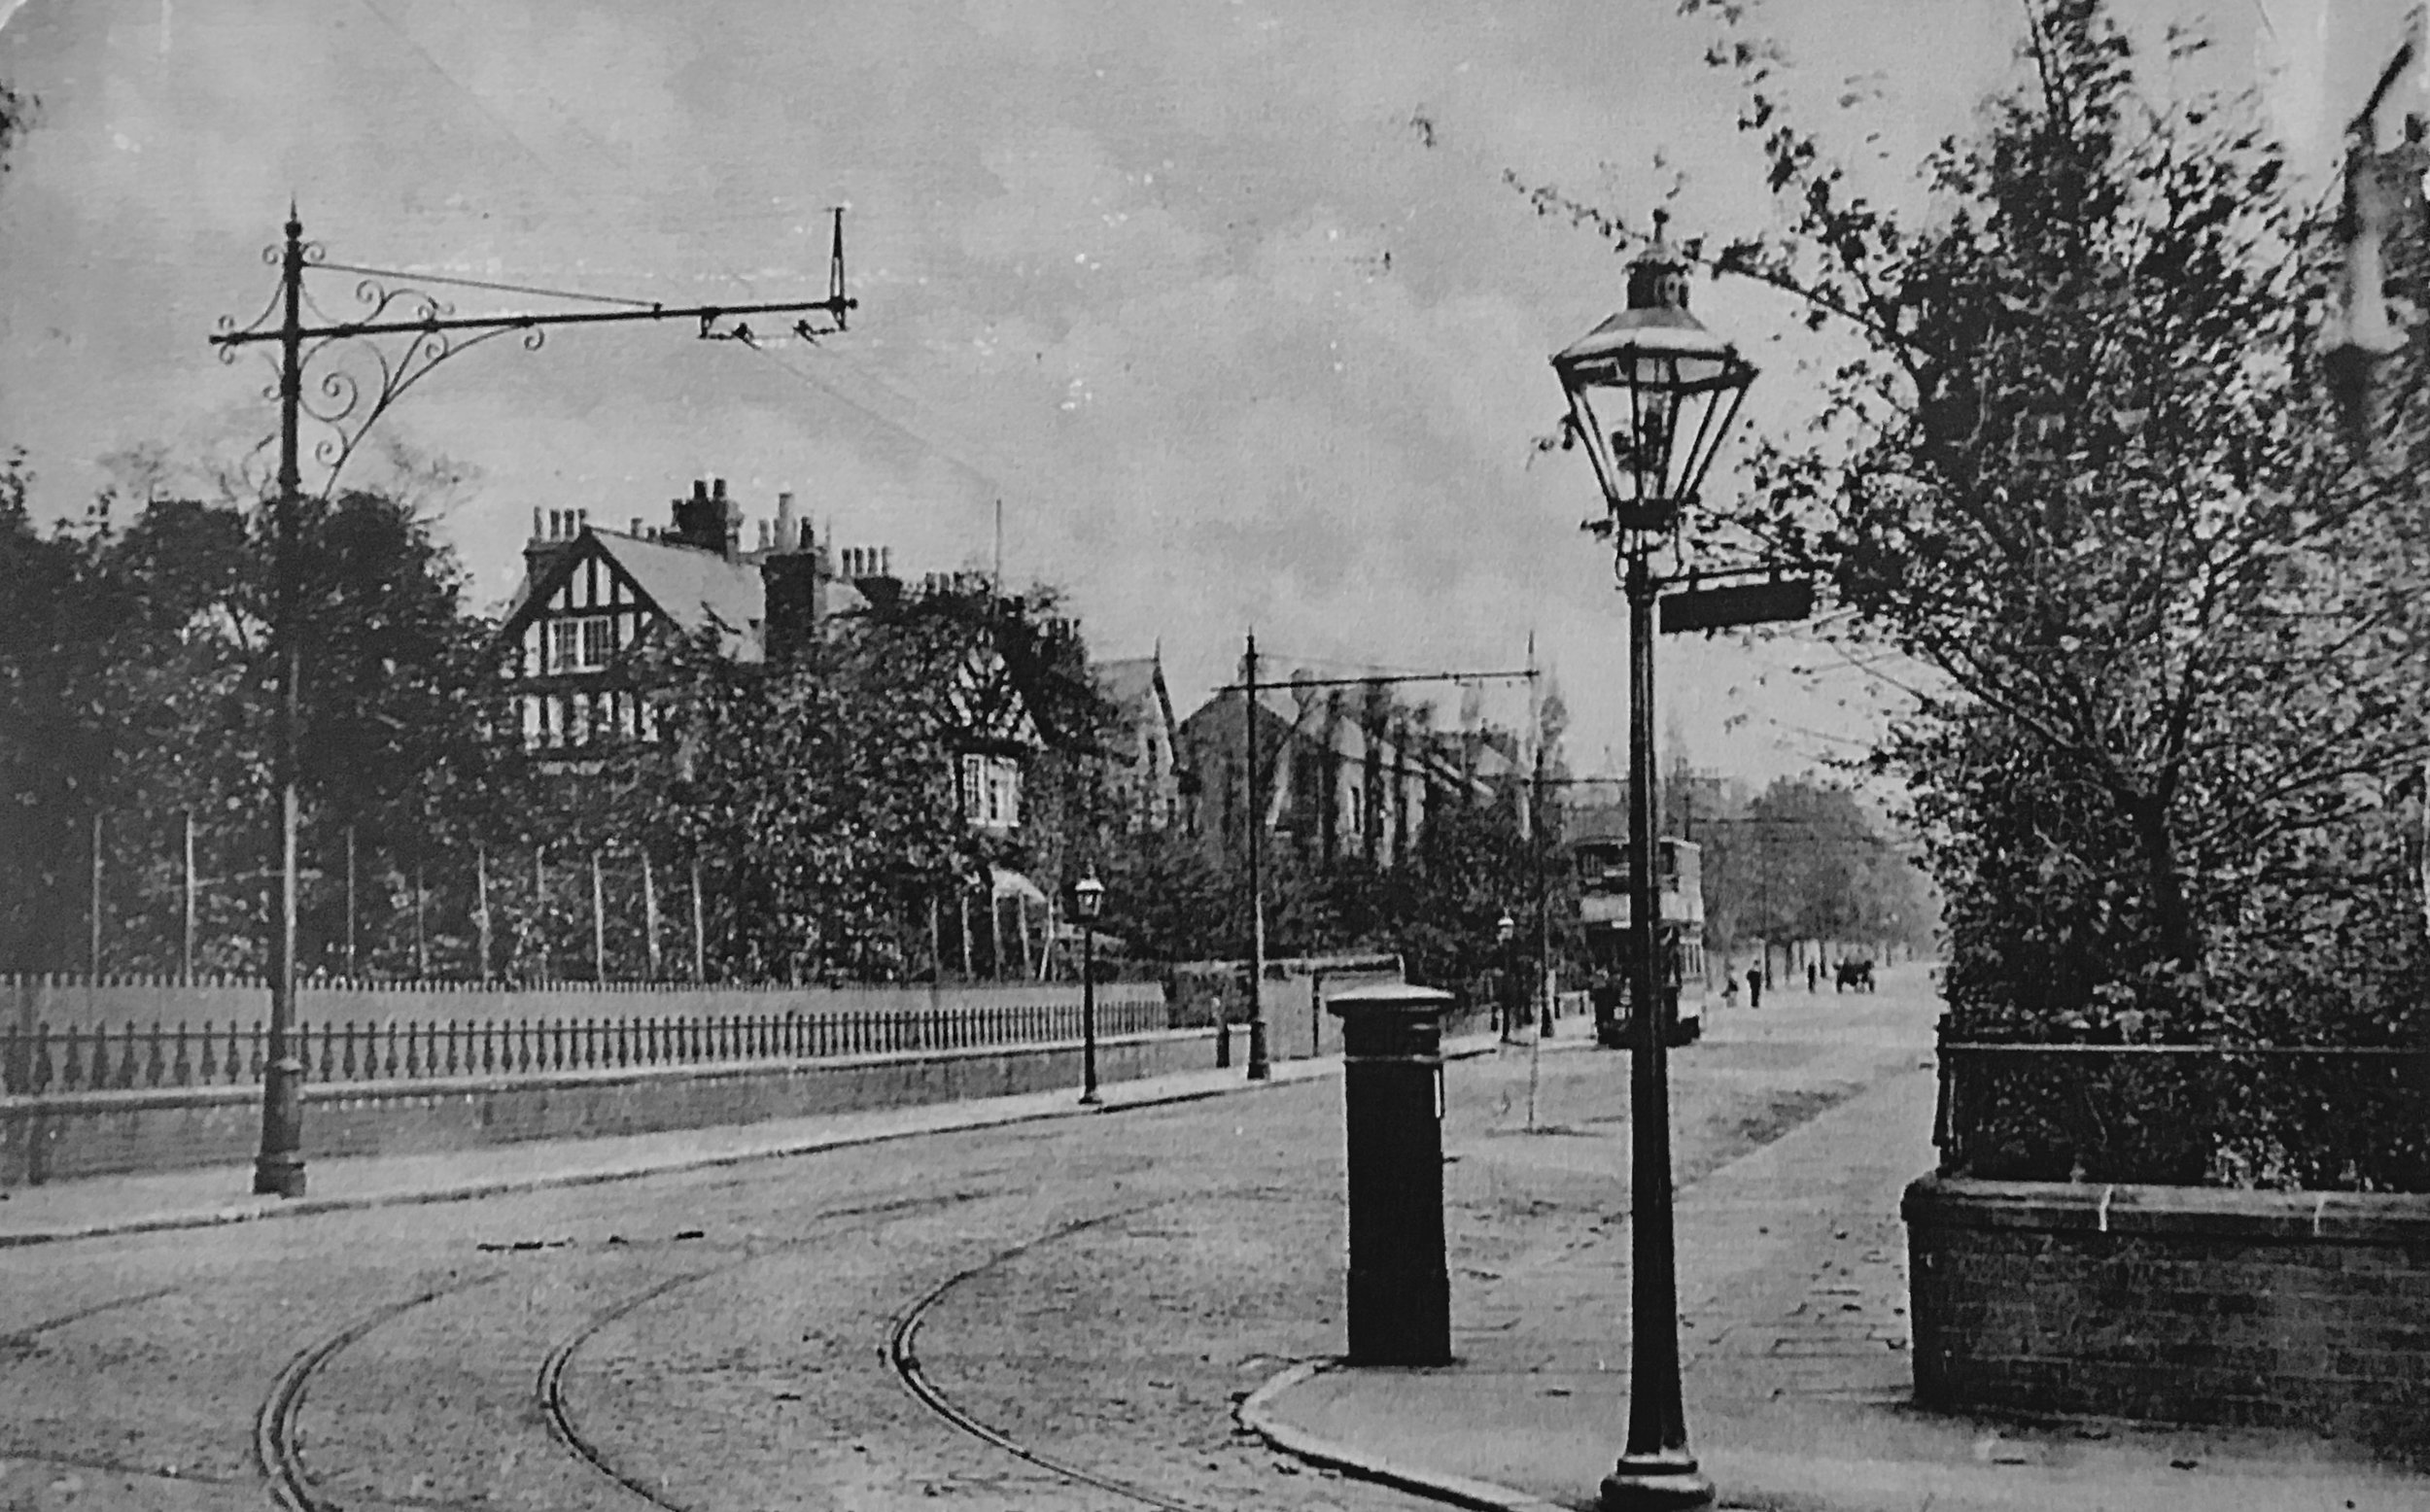 Victoria Road, junction with Cardigan Road